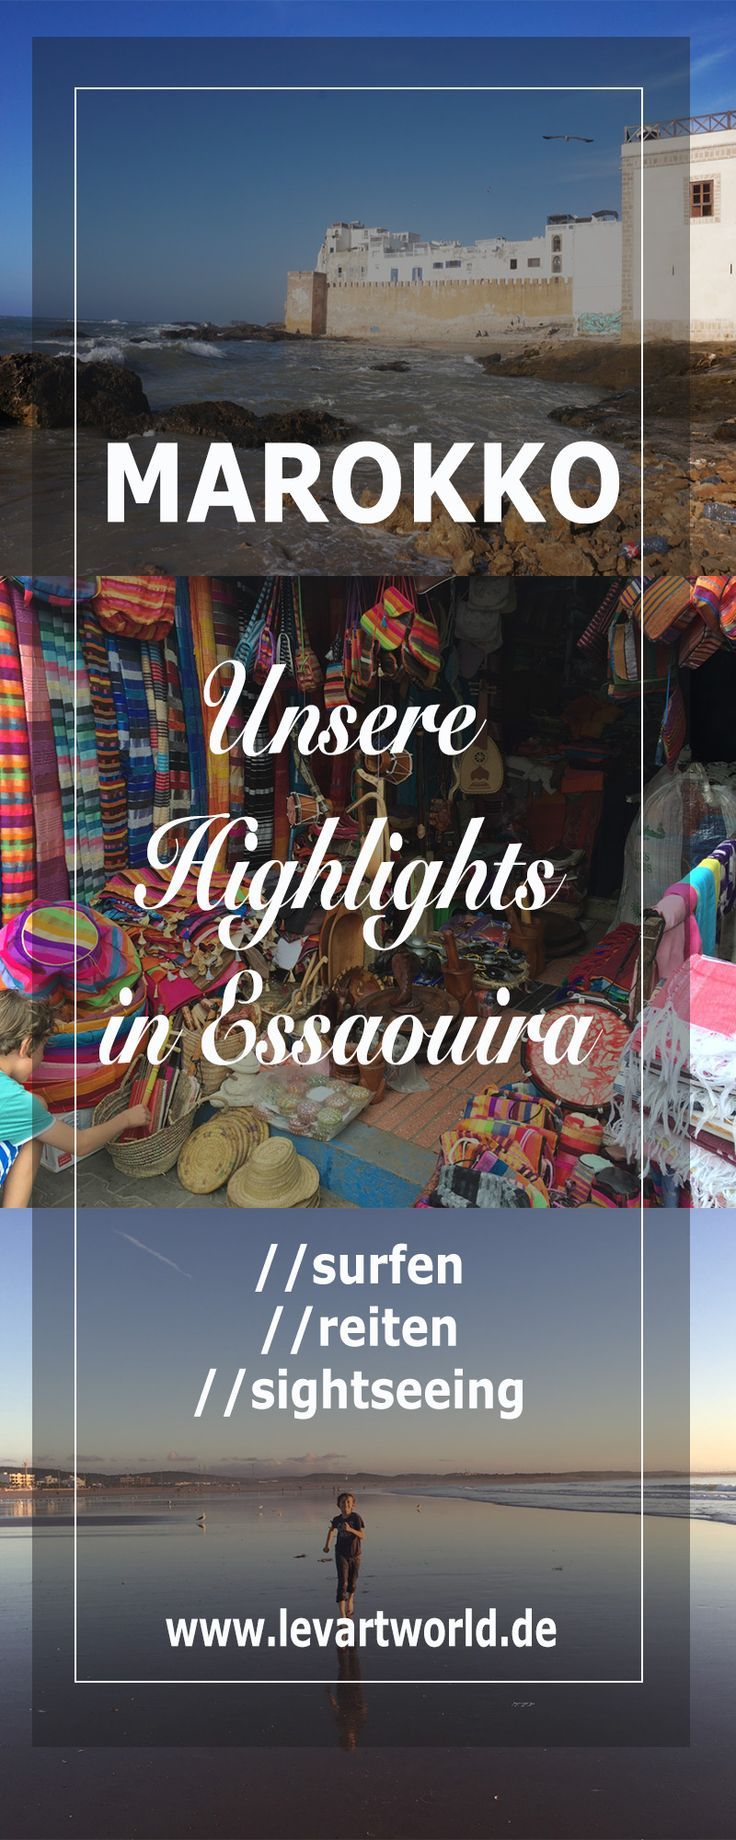 Tipps und Sehenswürdigkeiten in Essaouira – Marokko mit Kind. Tipps für Aktivitäten in Essaouira in Marokko. #holiday #summerholiday #travl #sea